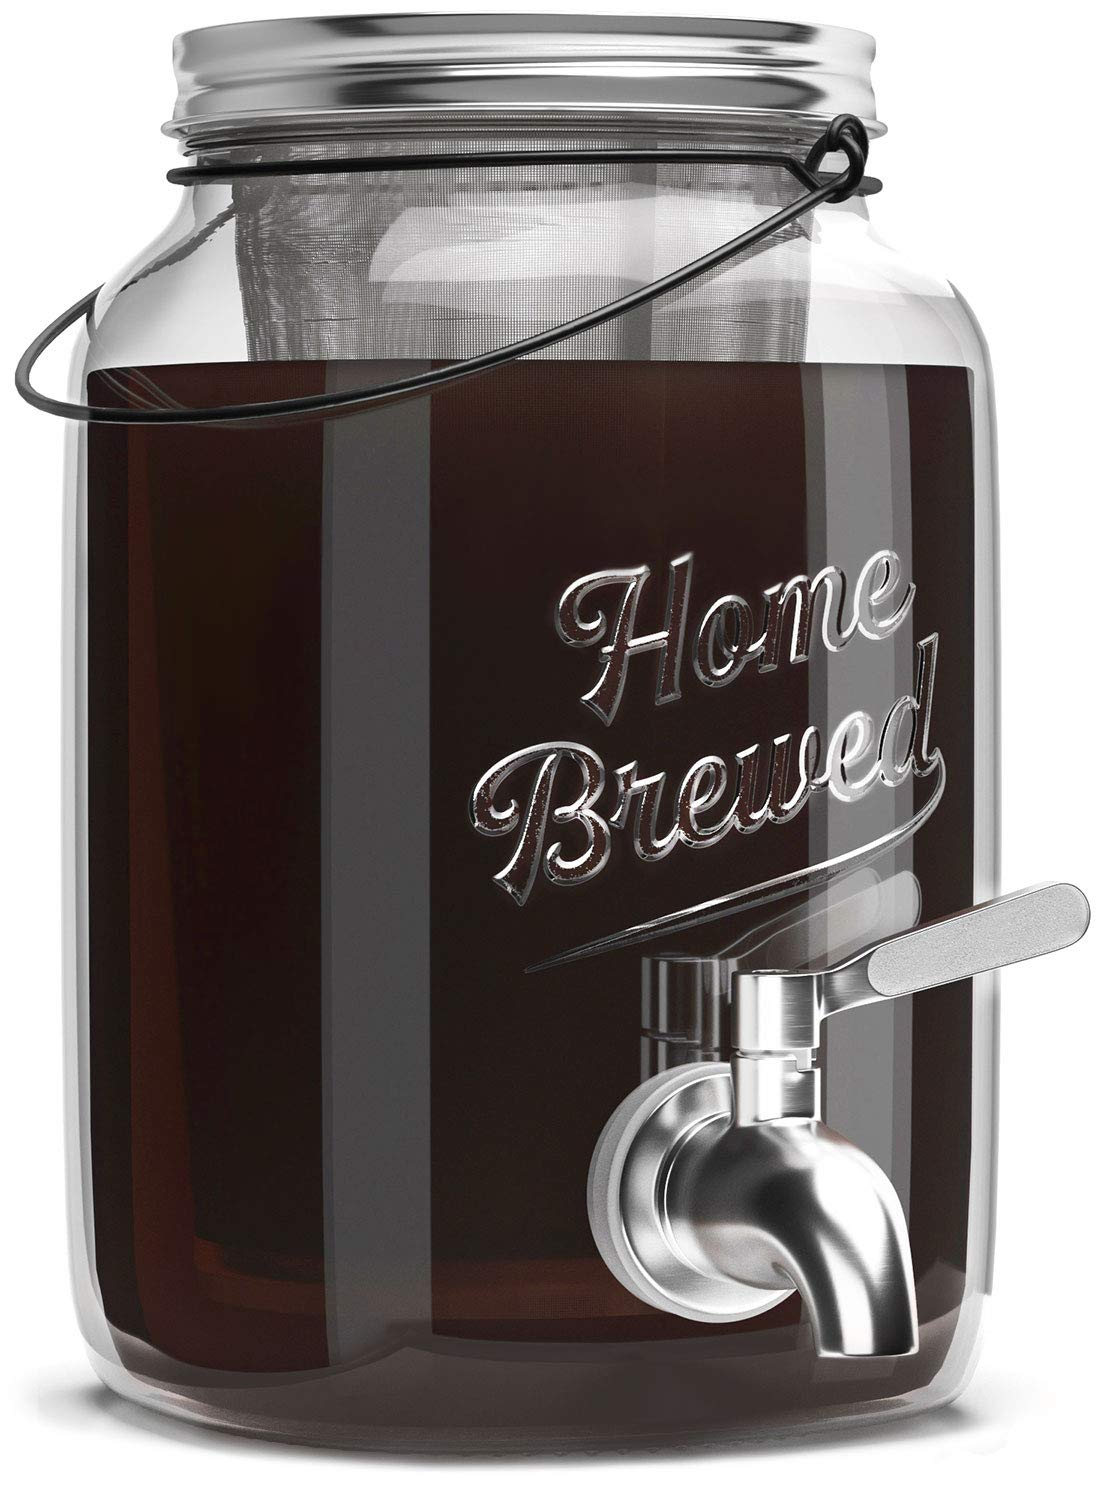 The Original Cold Brew on Tap 2.0-2 Liter Cold Brew Coffee Maker and Dispenser - Brewed Iced Coffee Maker - Glass Cold Brew Maker